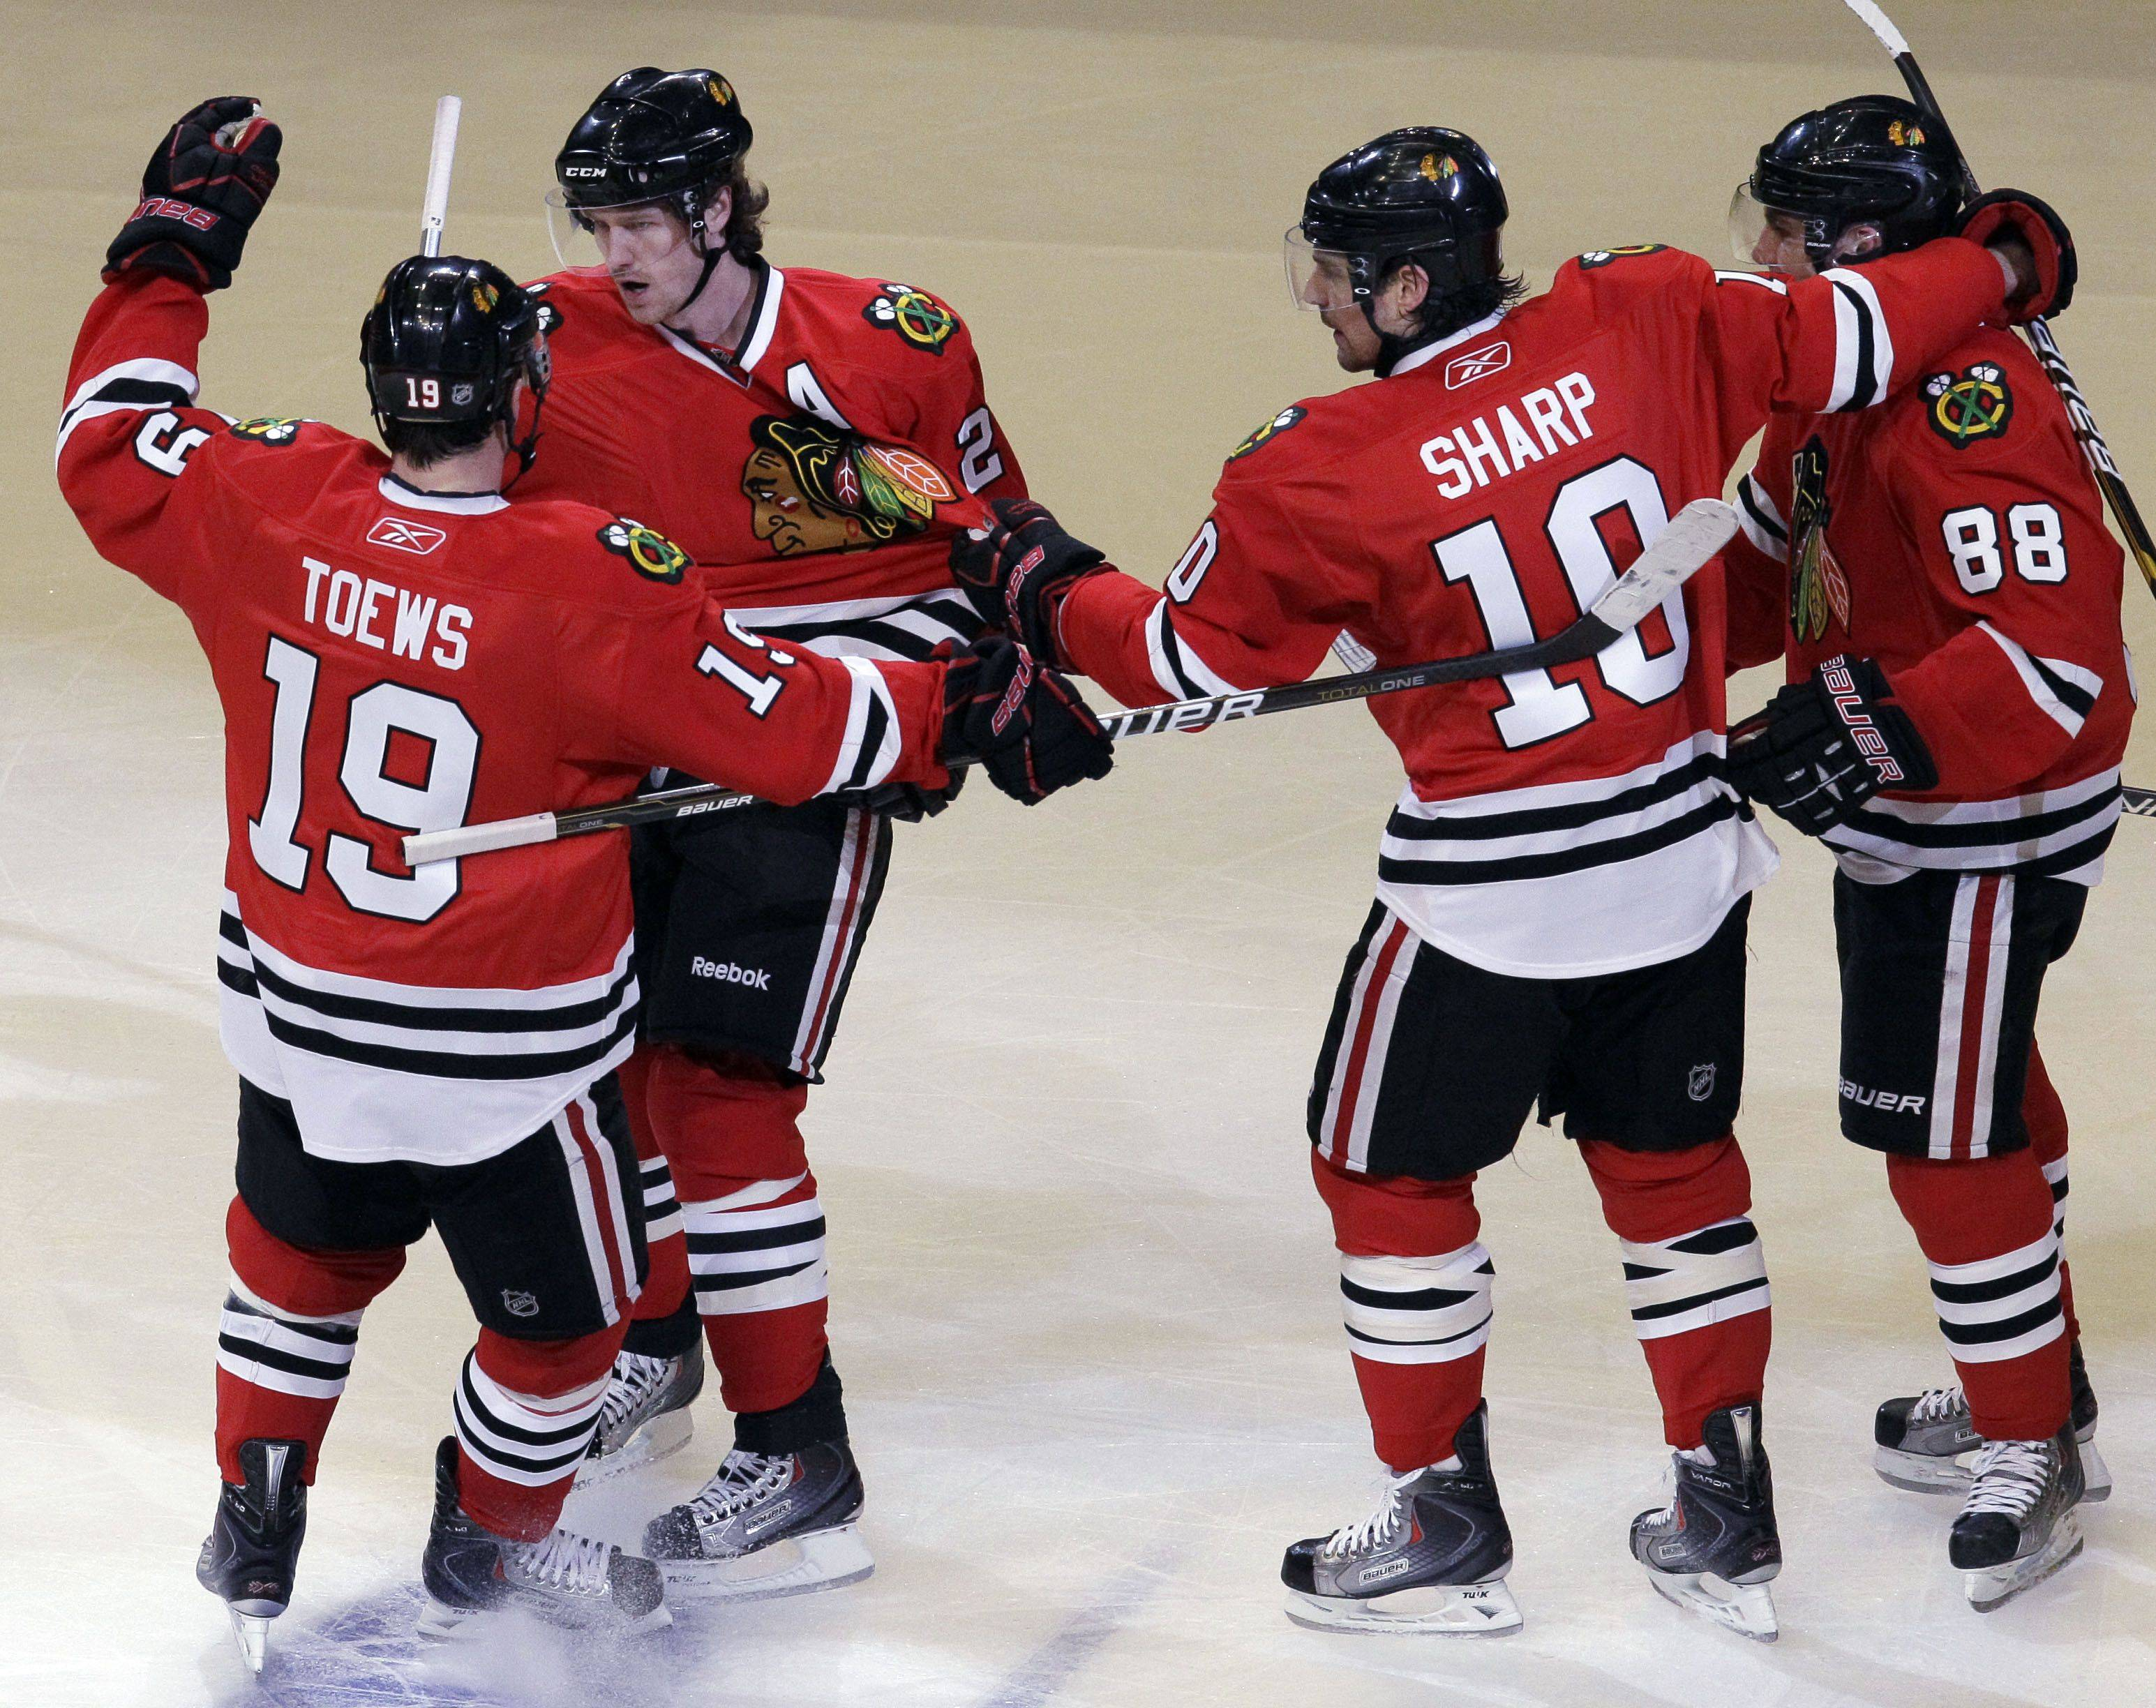 Chicago Blackhawks' Duncan Keith, second from left, celebrates with Jonathan Toews, left, Patrick Sharp and Patrick Kane after scoring his goal during the first period.